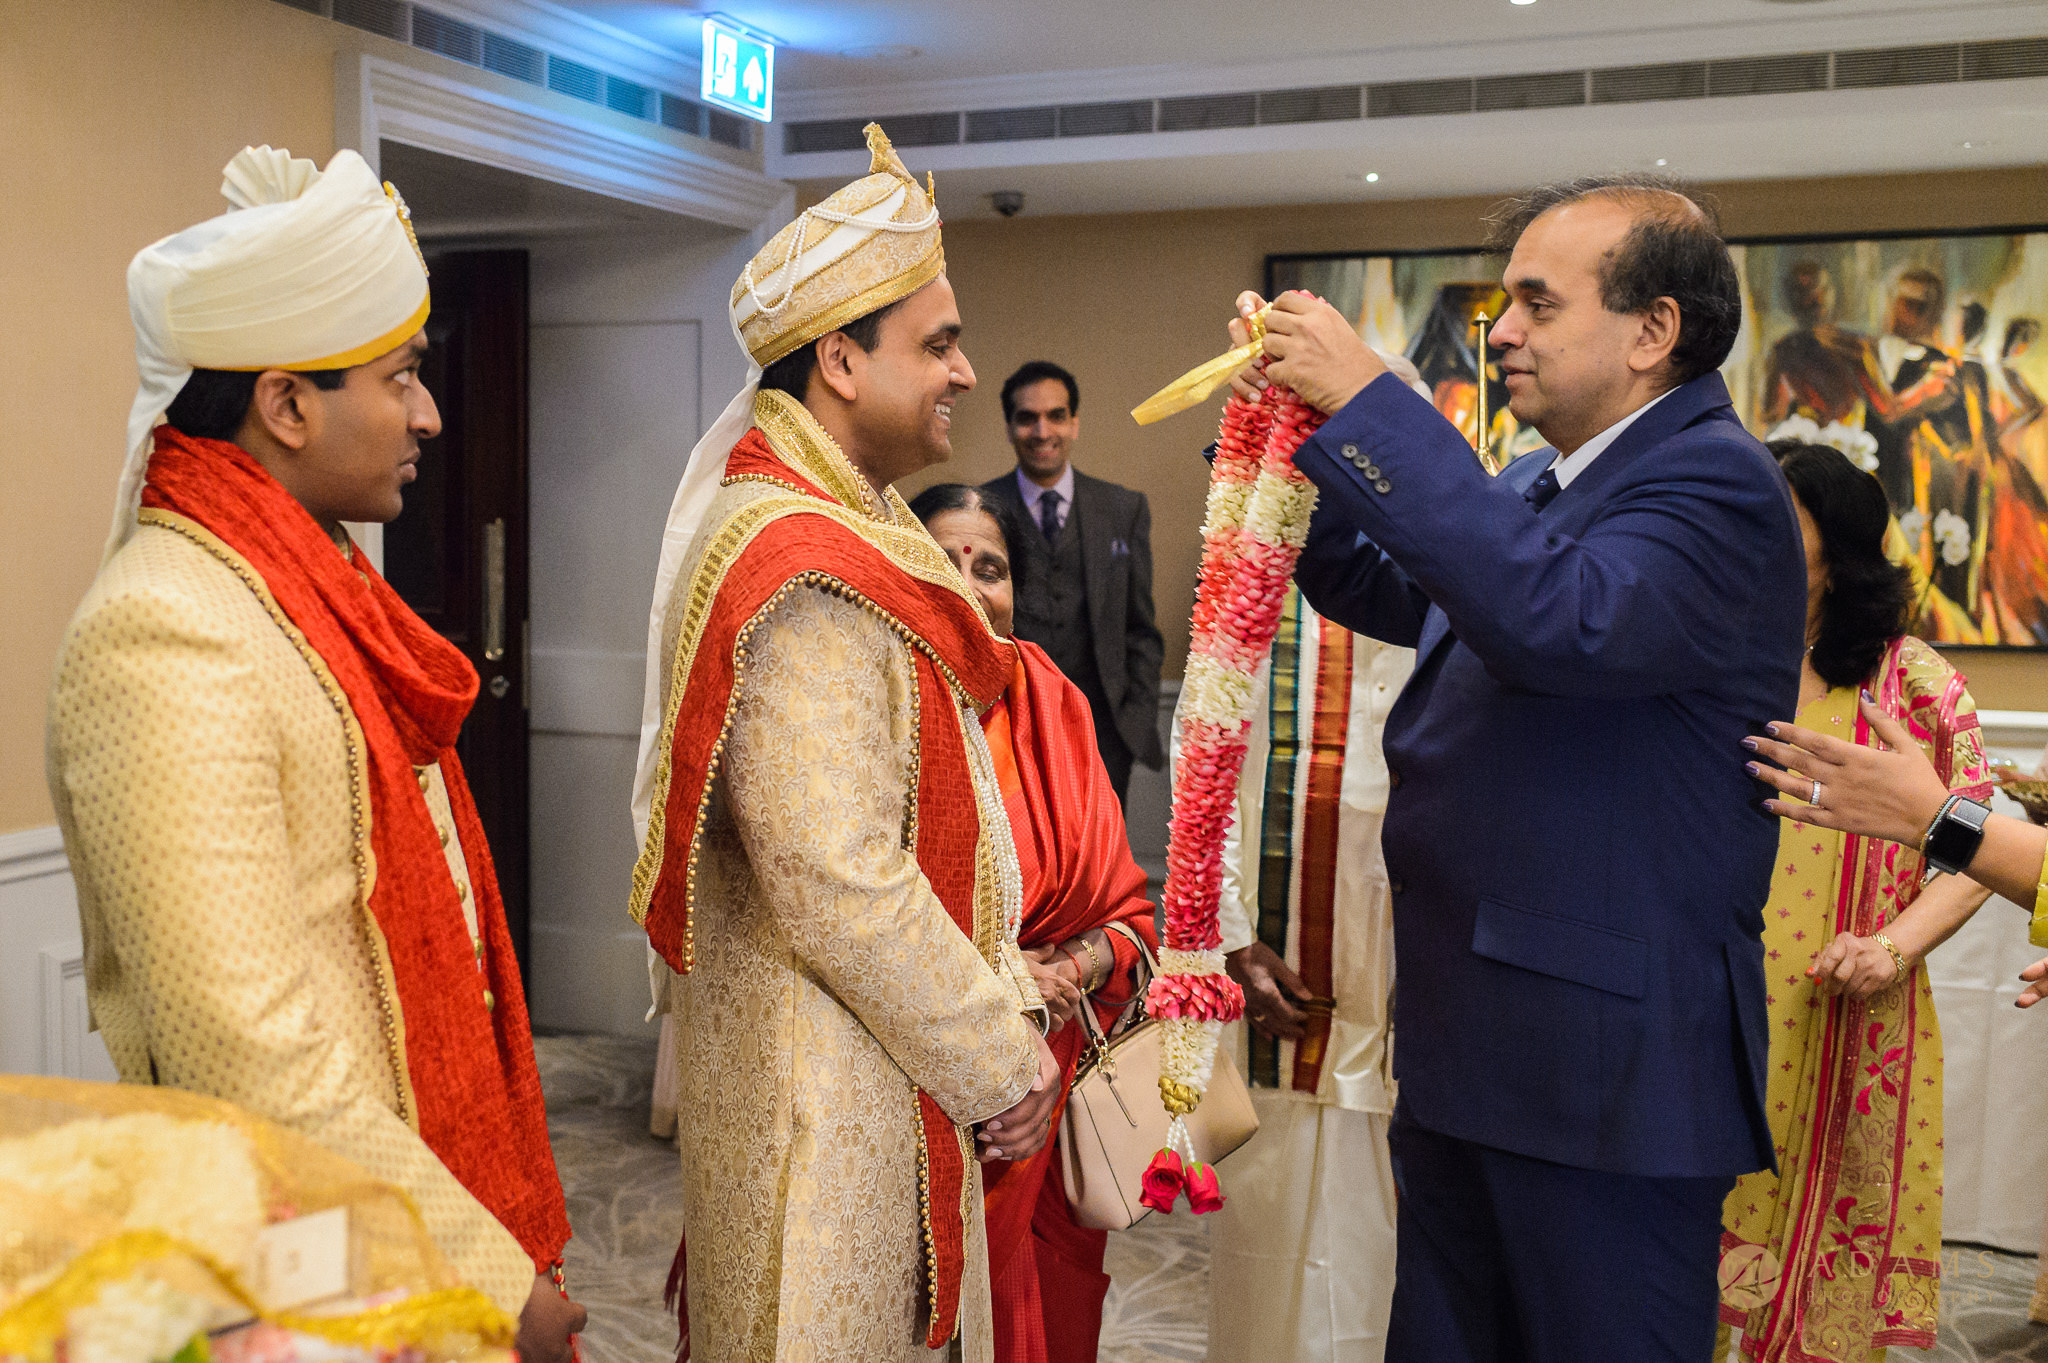 Garlands are being put on the groom